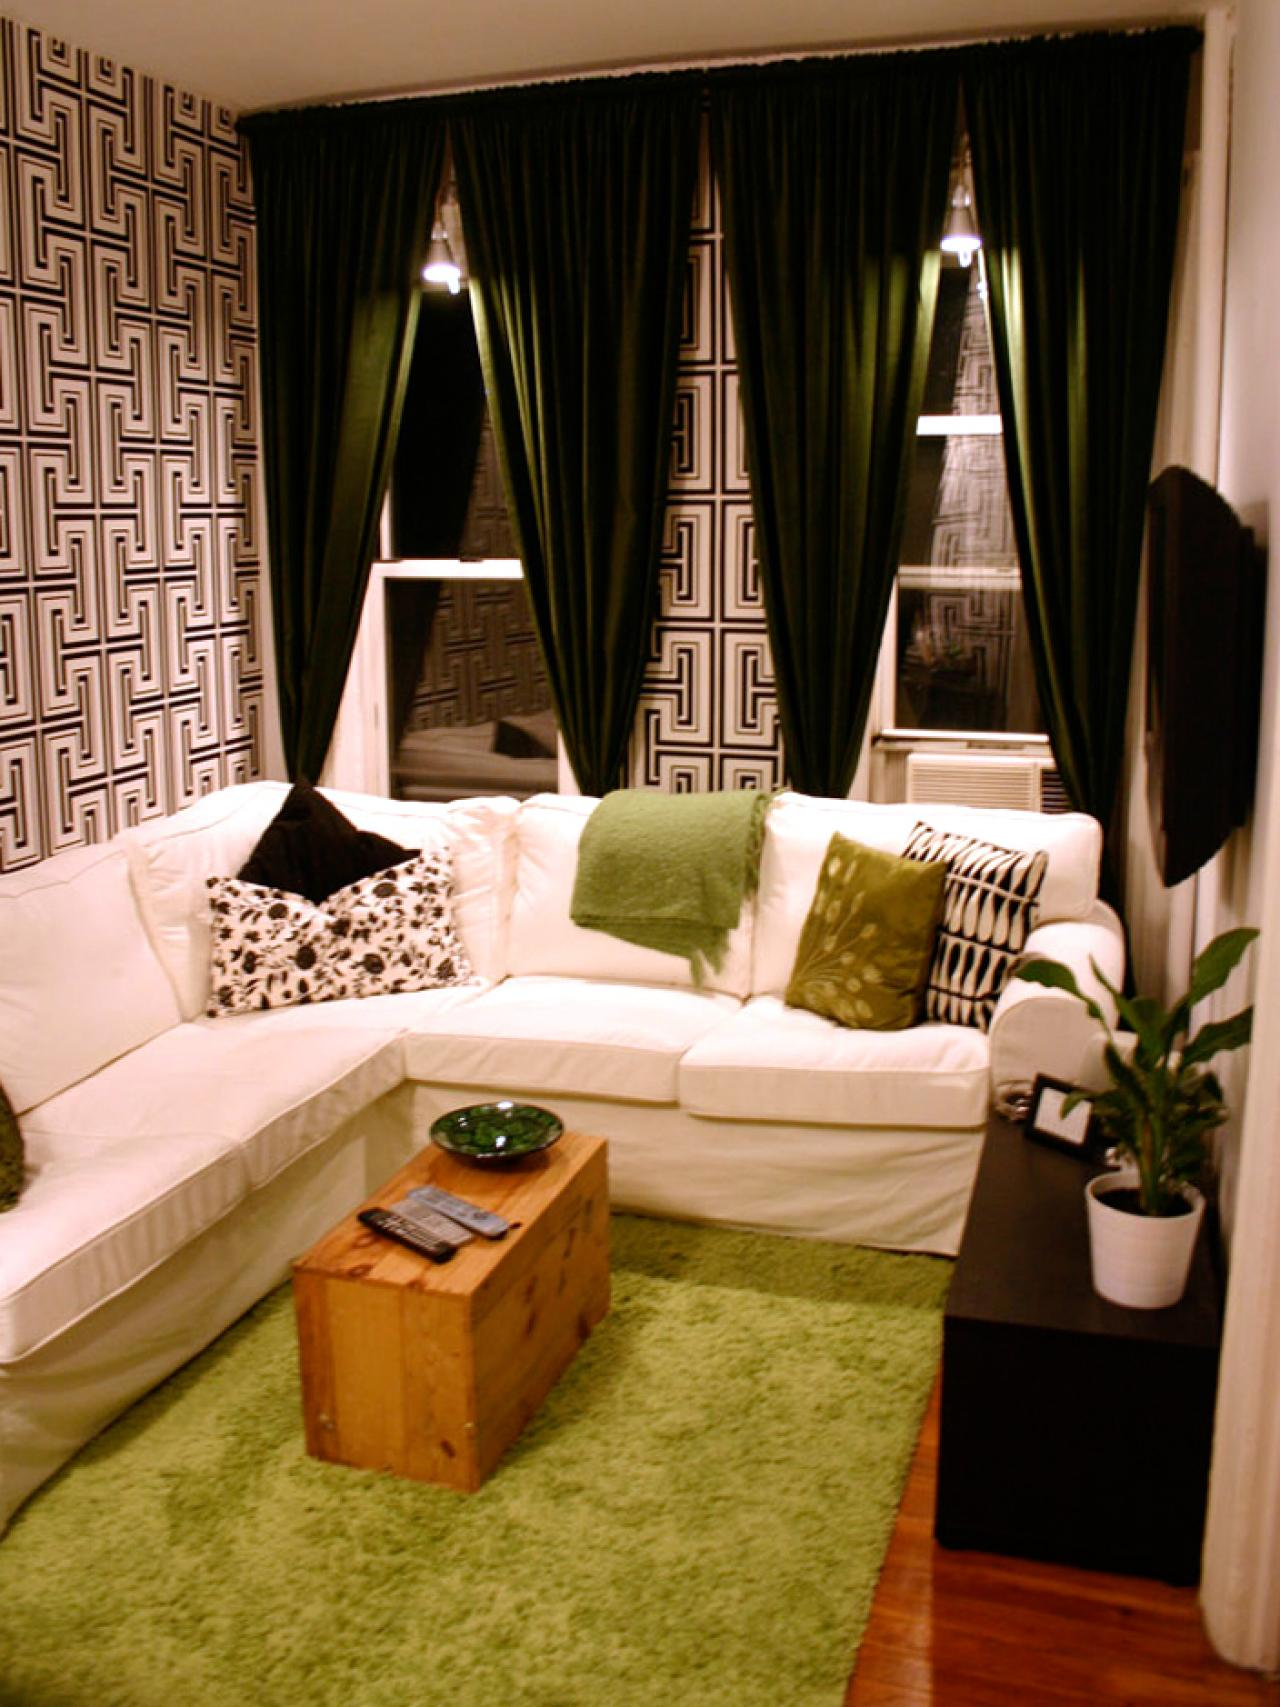 Studio design ideas interior design styles and color for Studio apartment living ideas